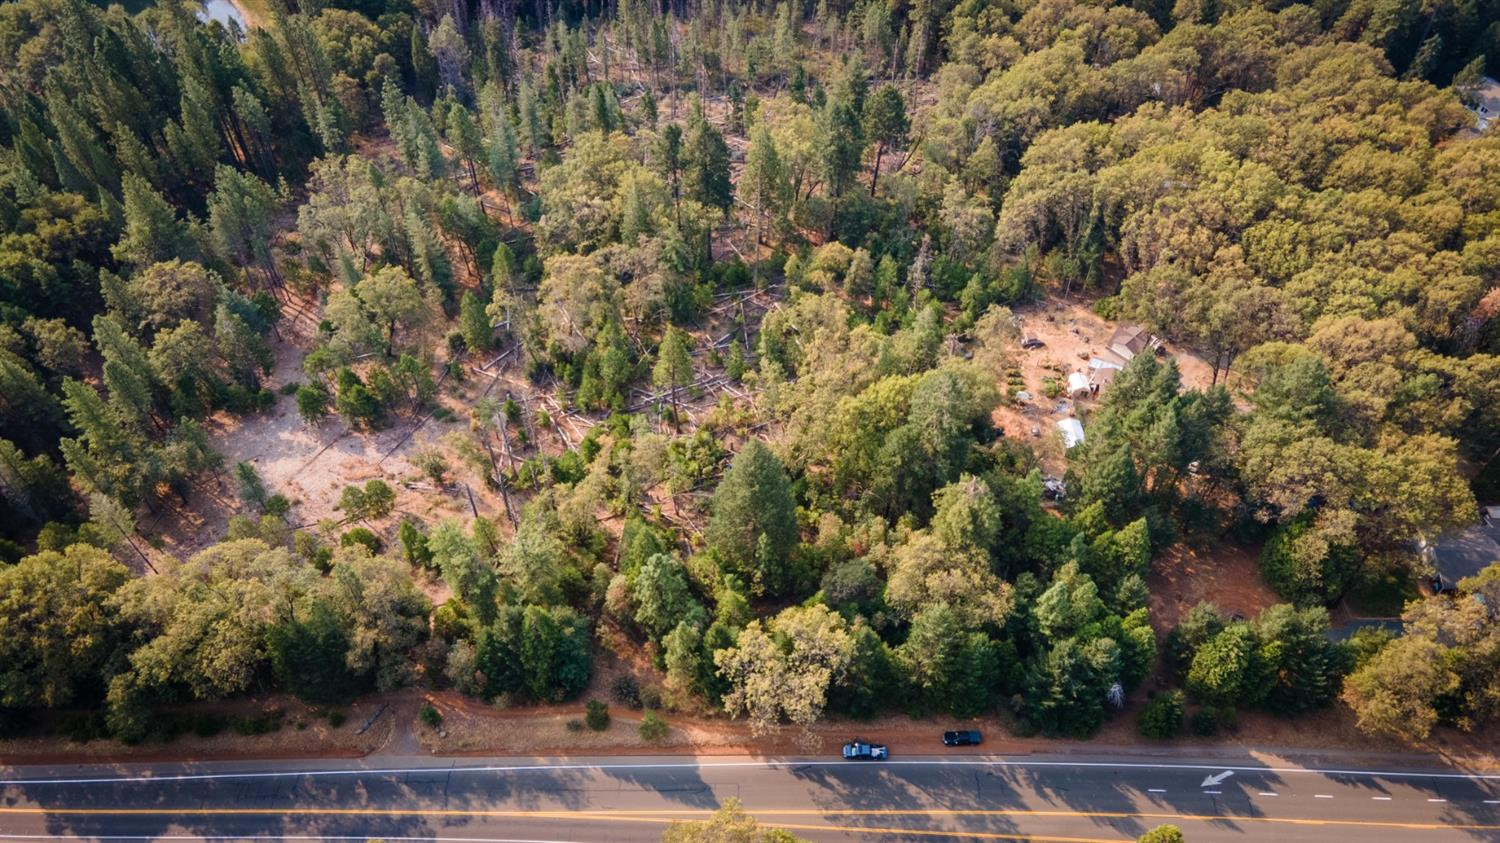 69 Foresthill Rd, Foresthill, CA, 95631